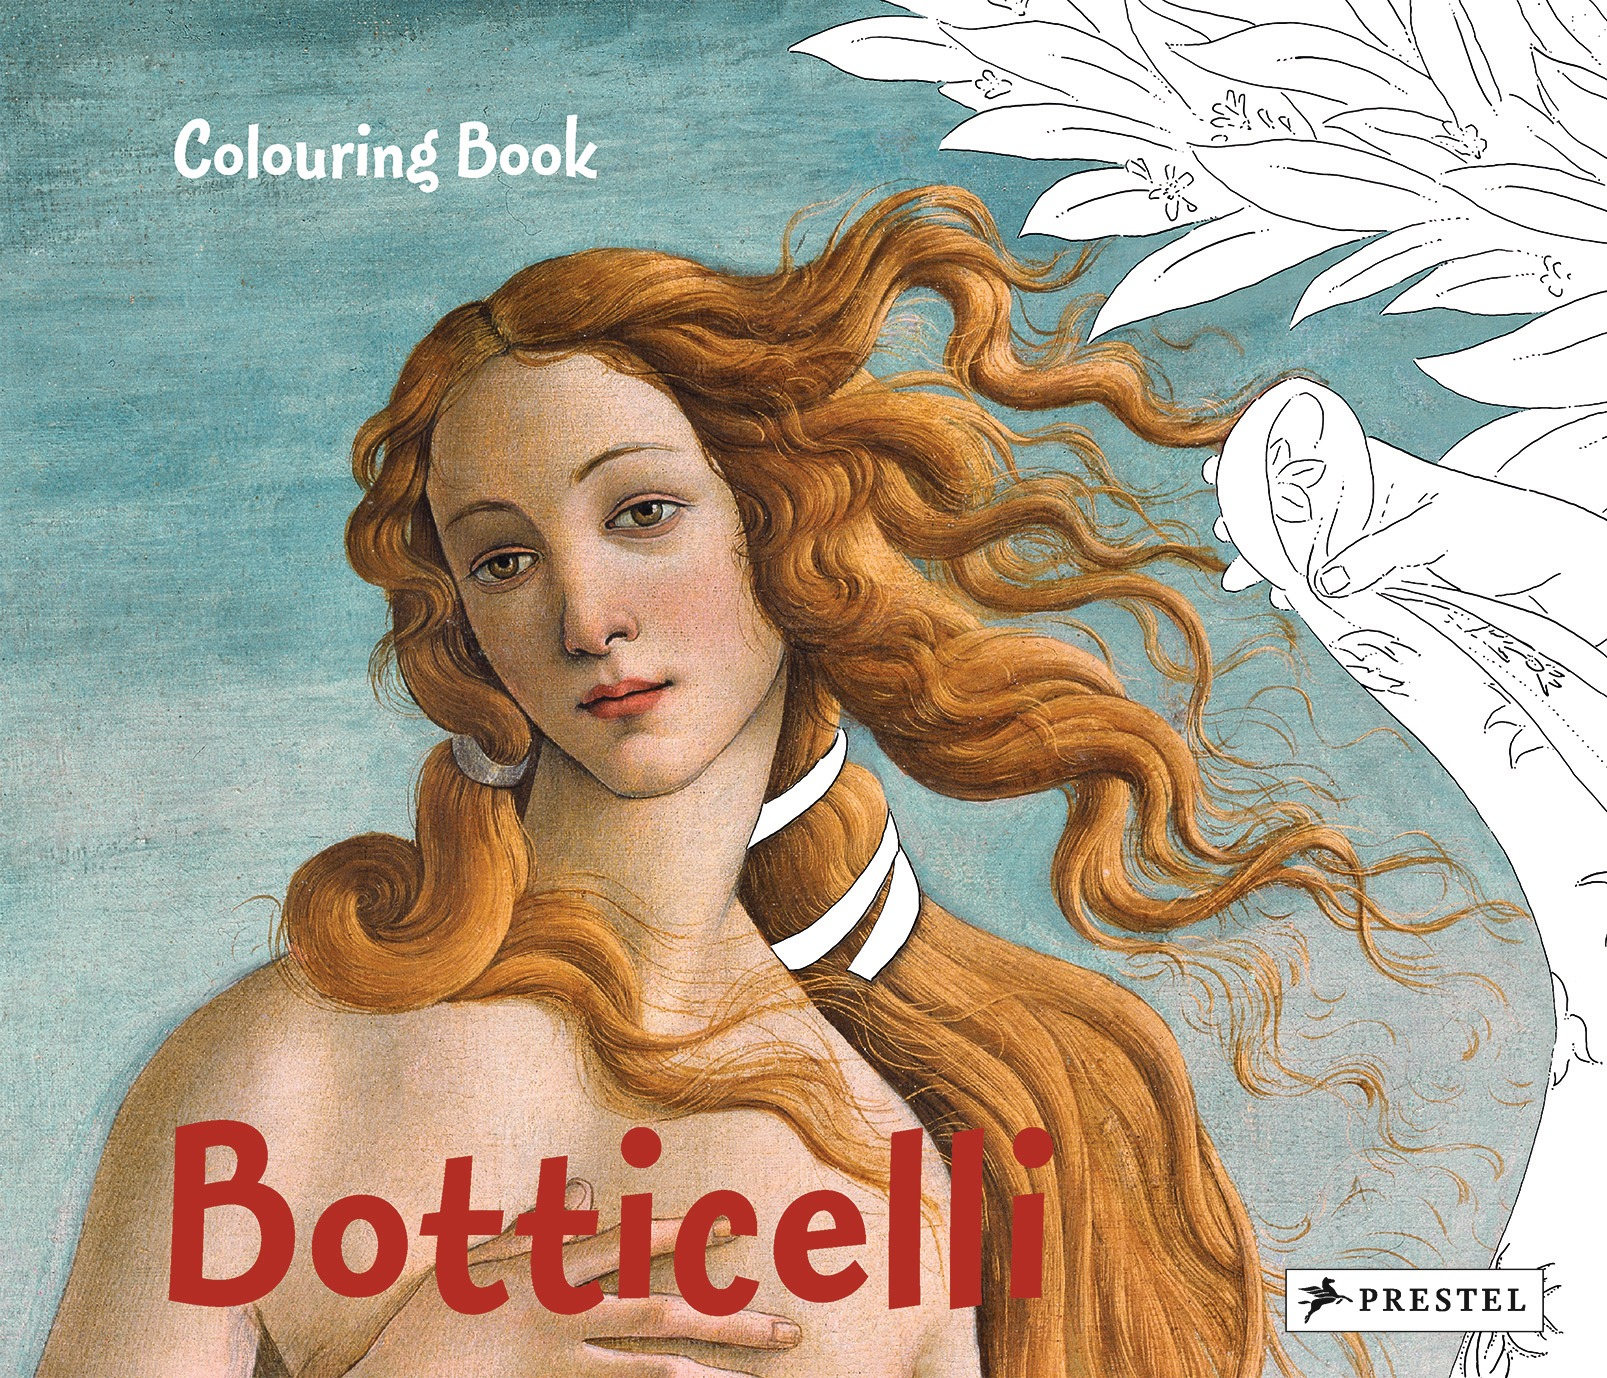 Artist Coloring Book - Worksheet & Coloring Pages